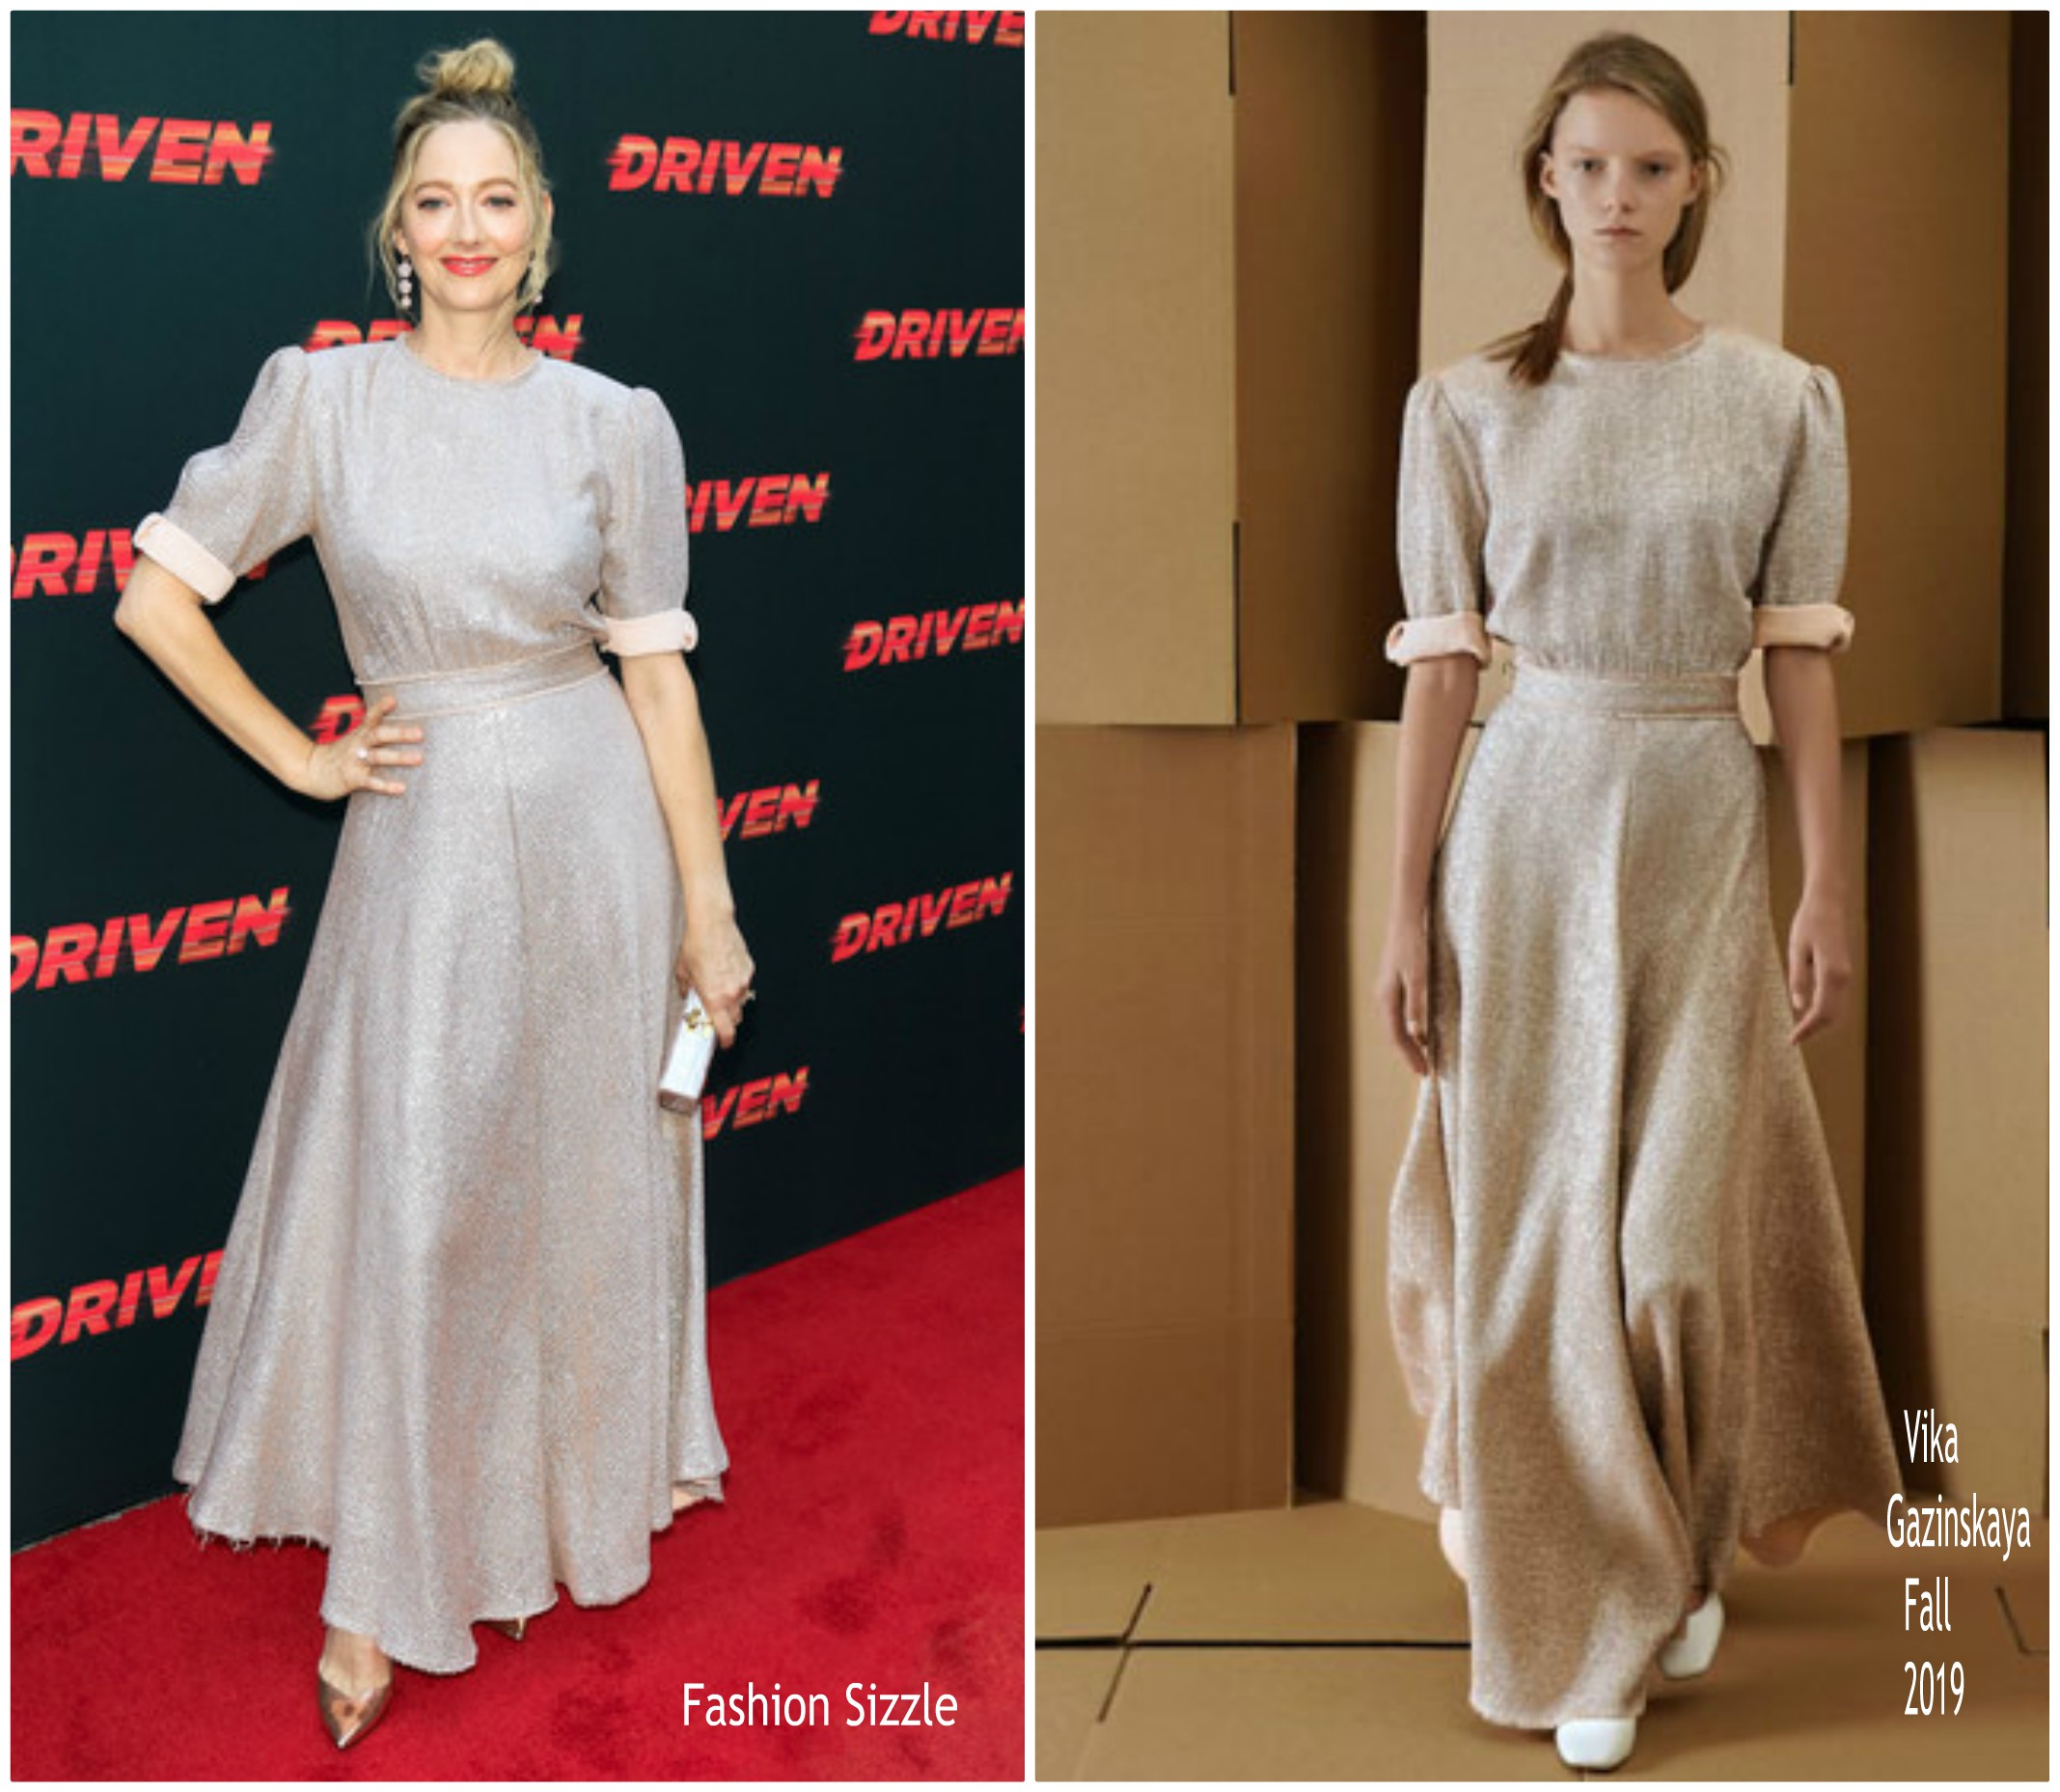 judy-greer-in-vika-gazinskaya-driven-la-premiere